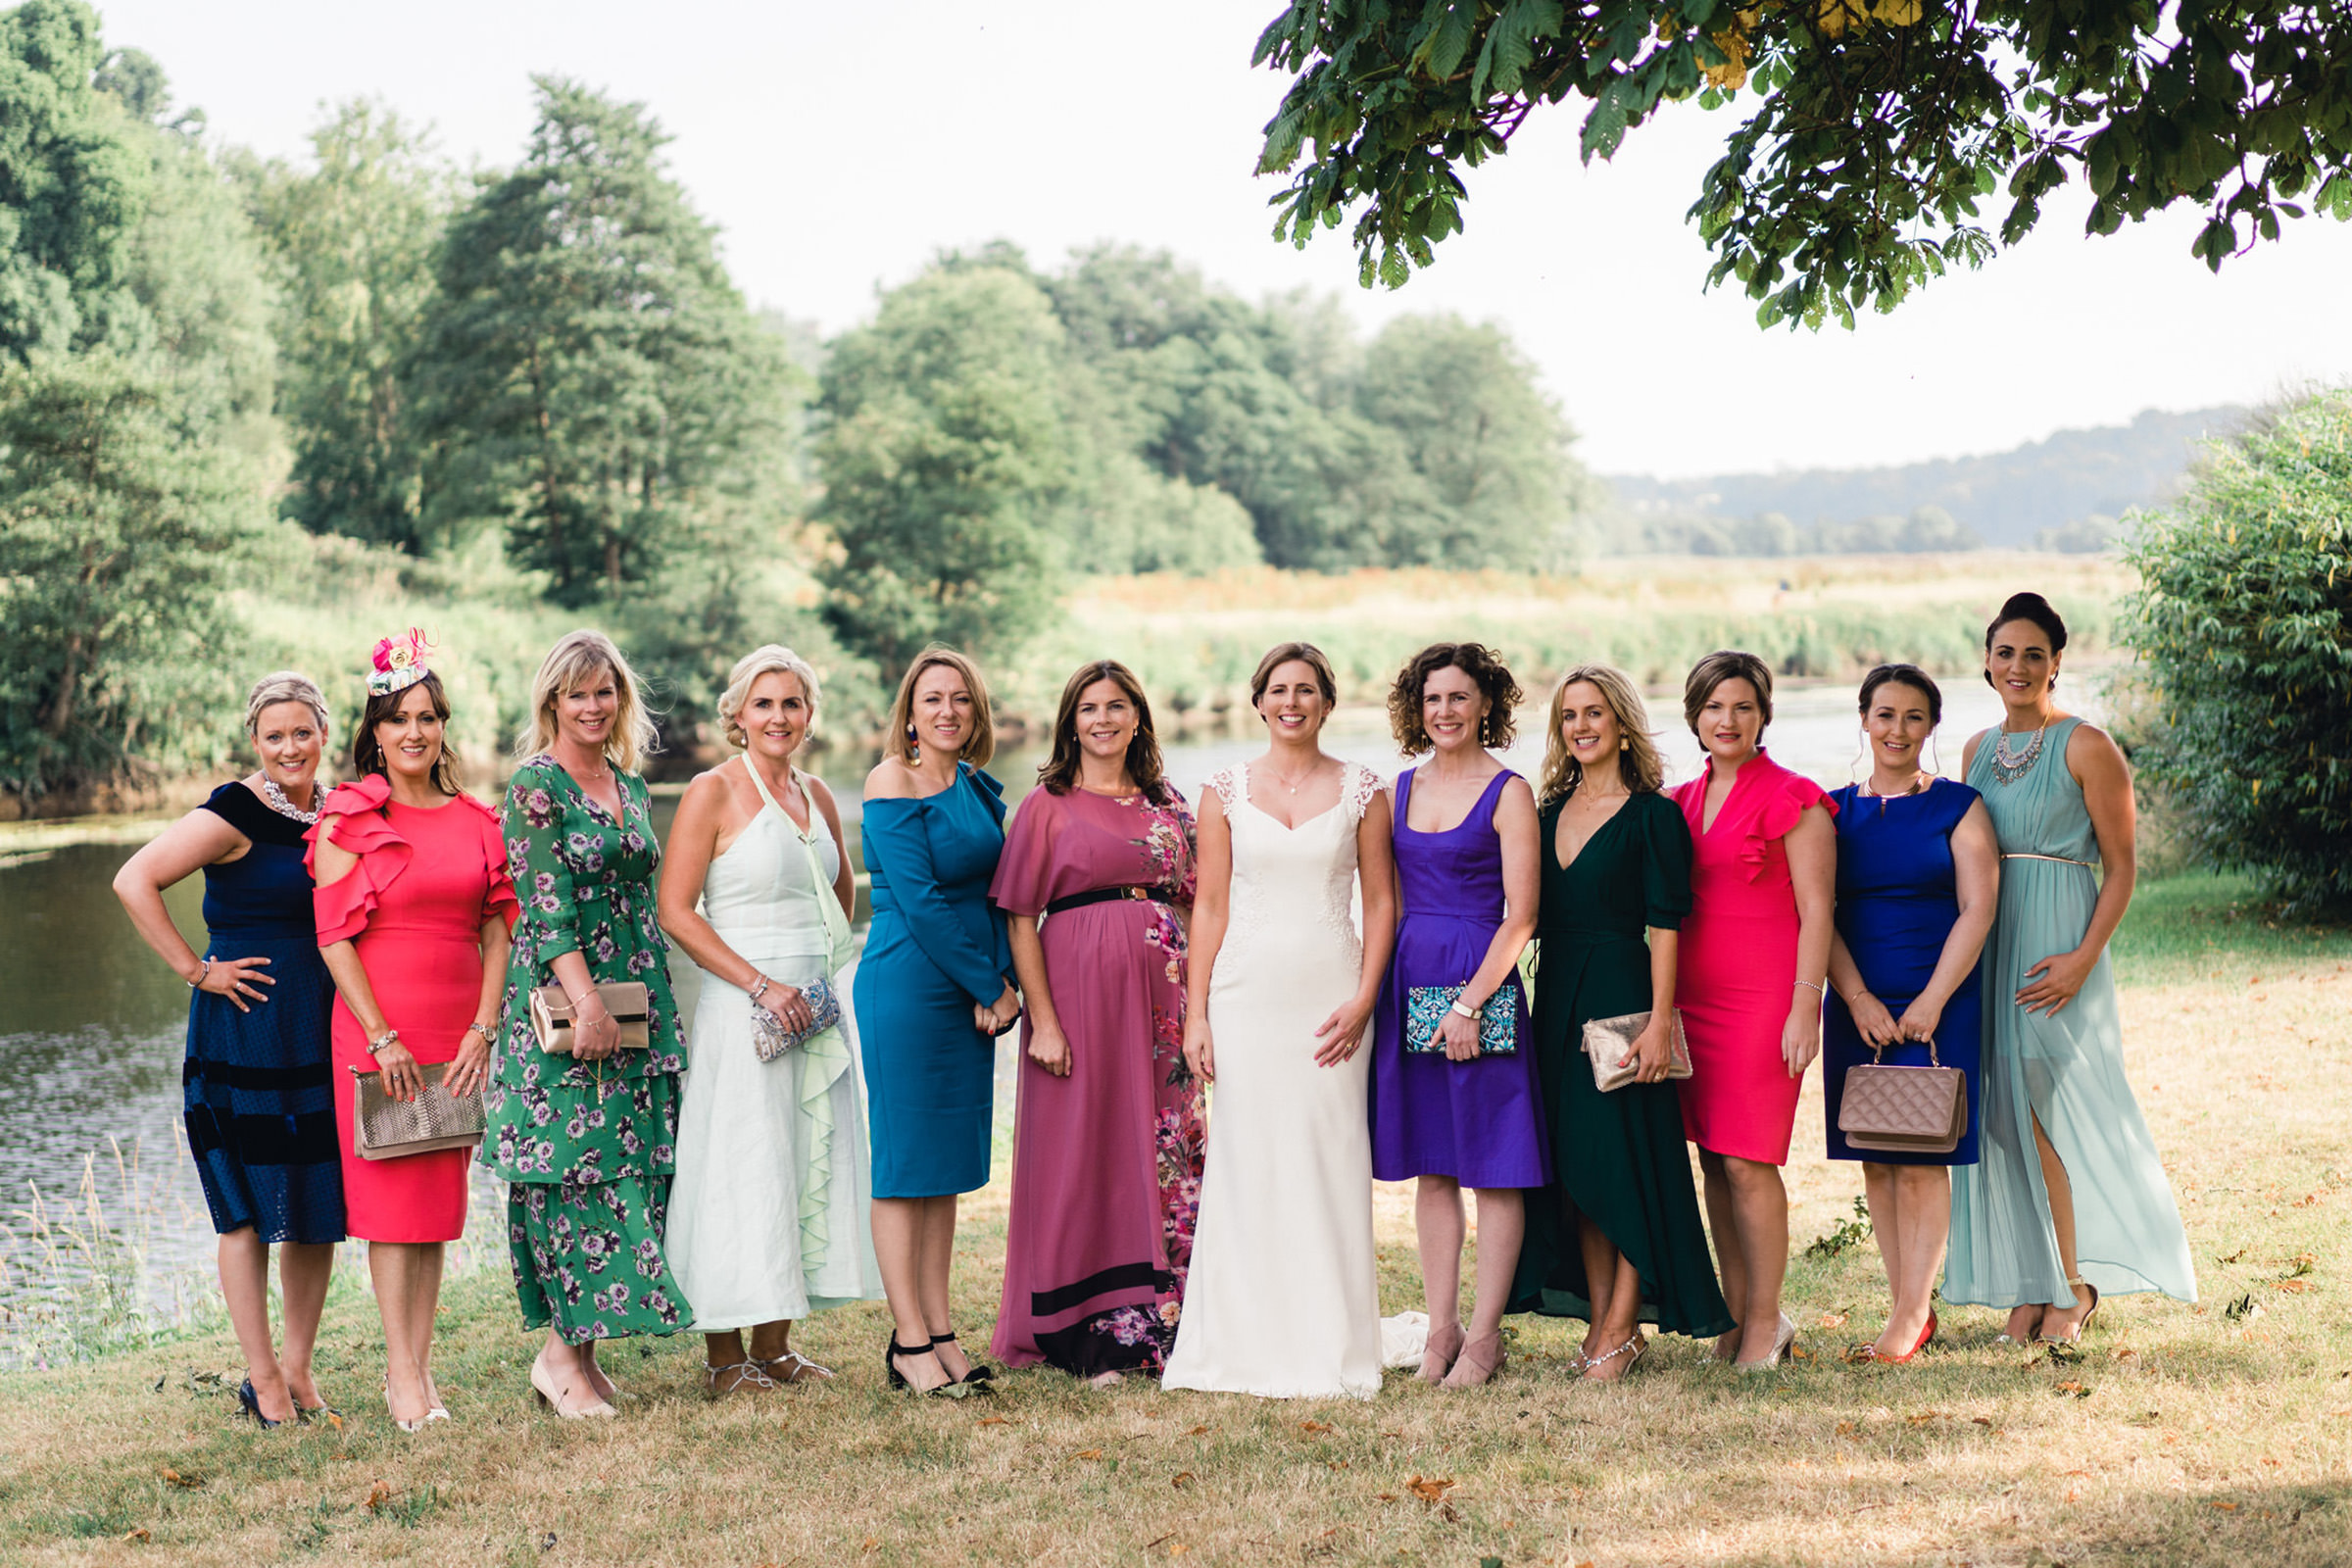 Bride group shot with female guests - photo by The Portrait Rooms